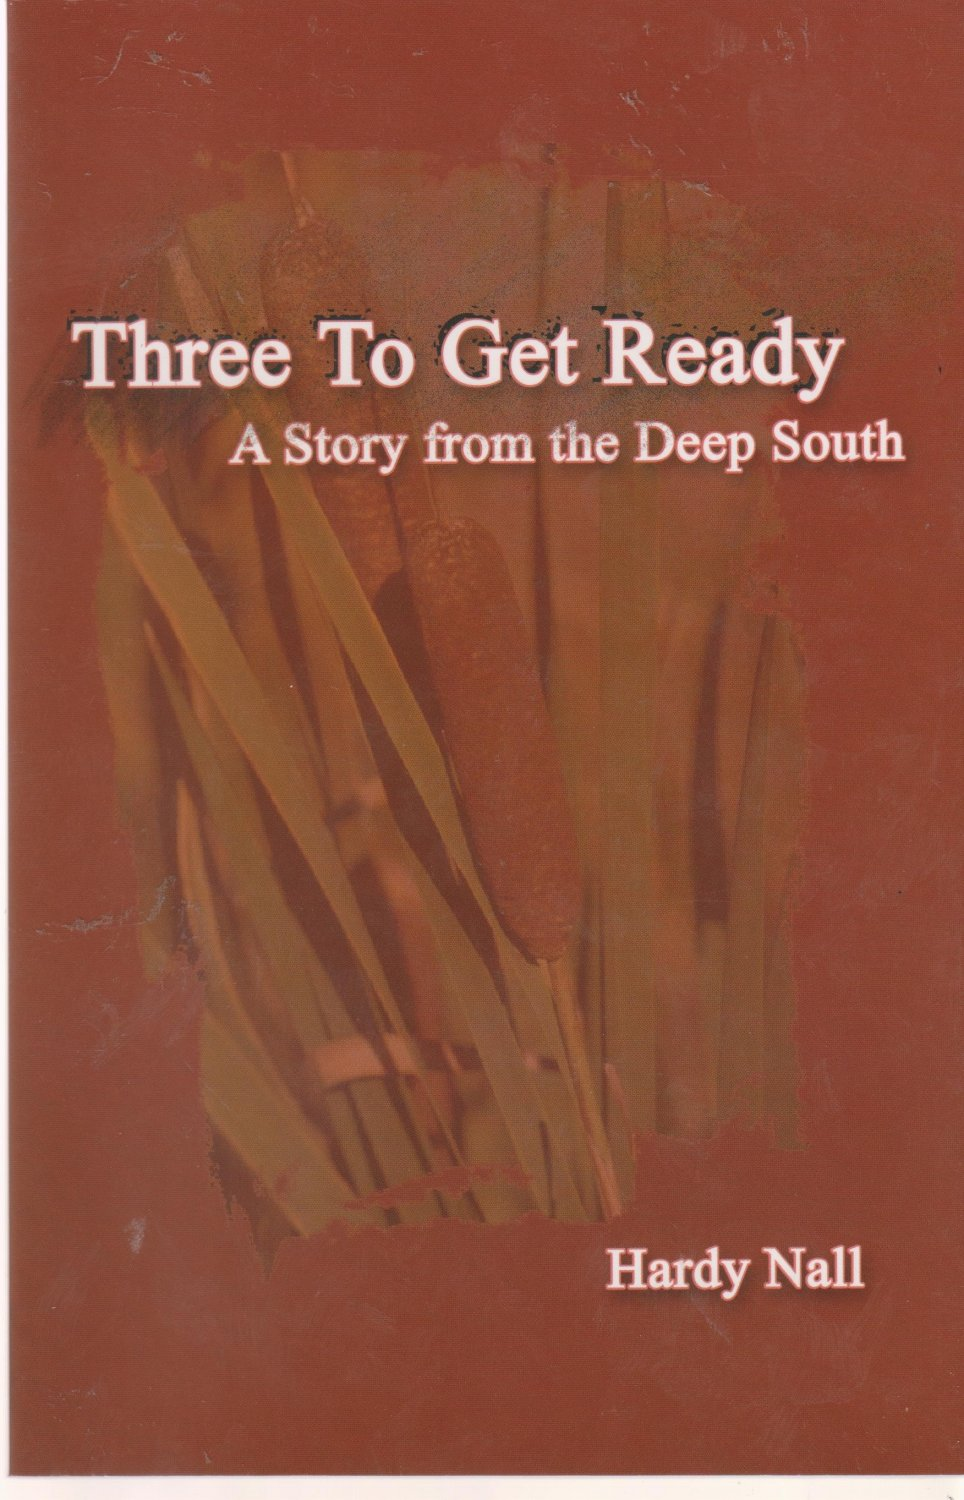 Three to Get Ready a Story From the Deep South - Hardy Nall